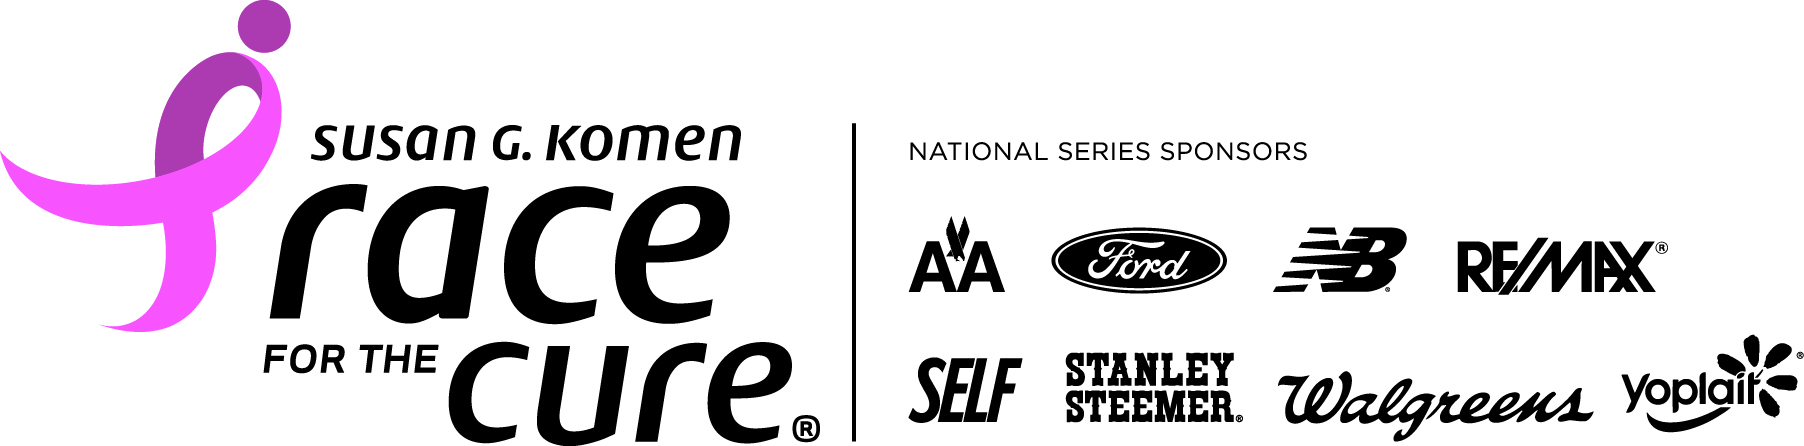 National Series Sponsors